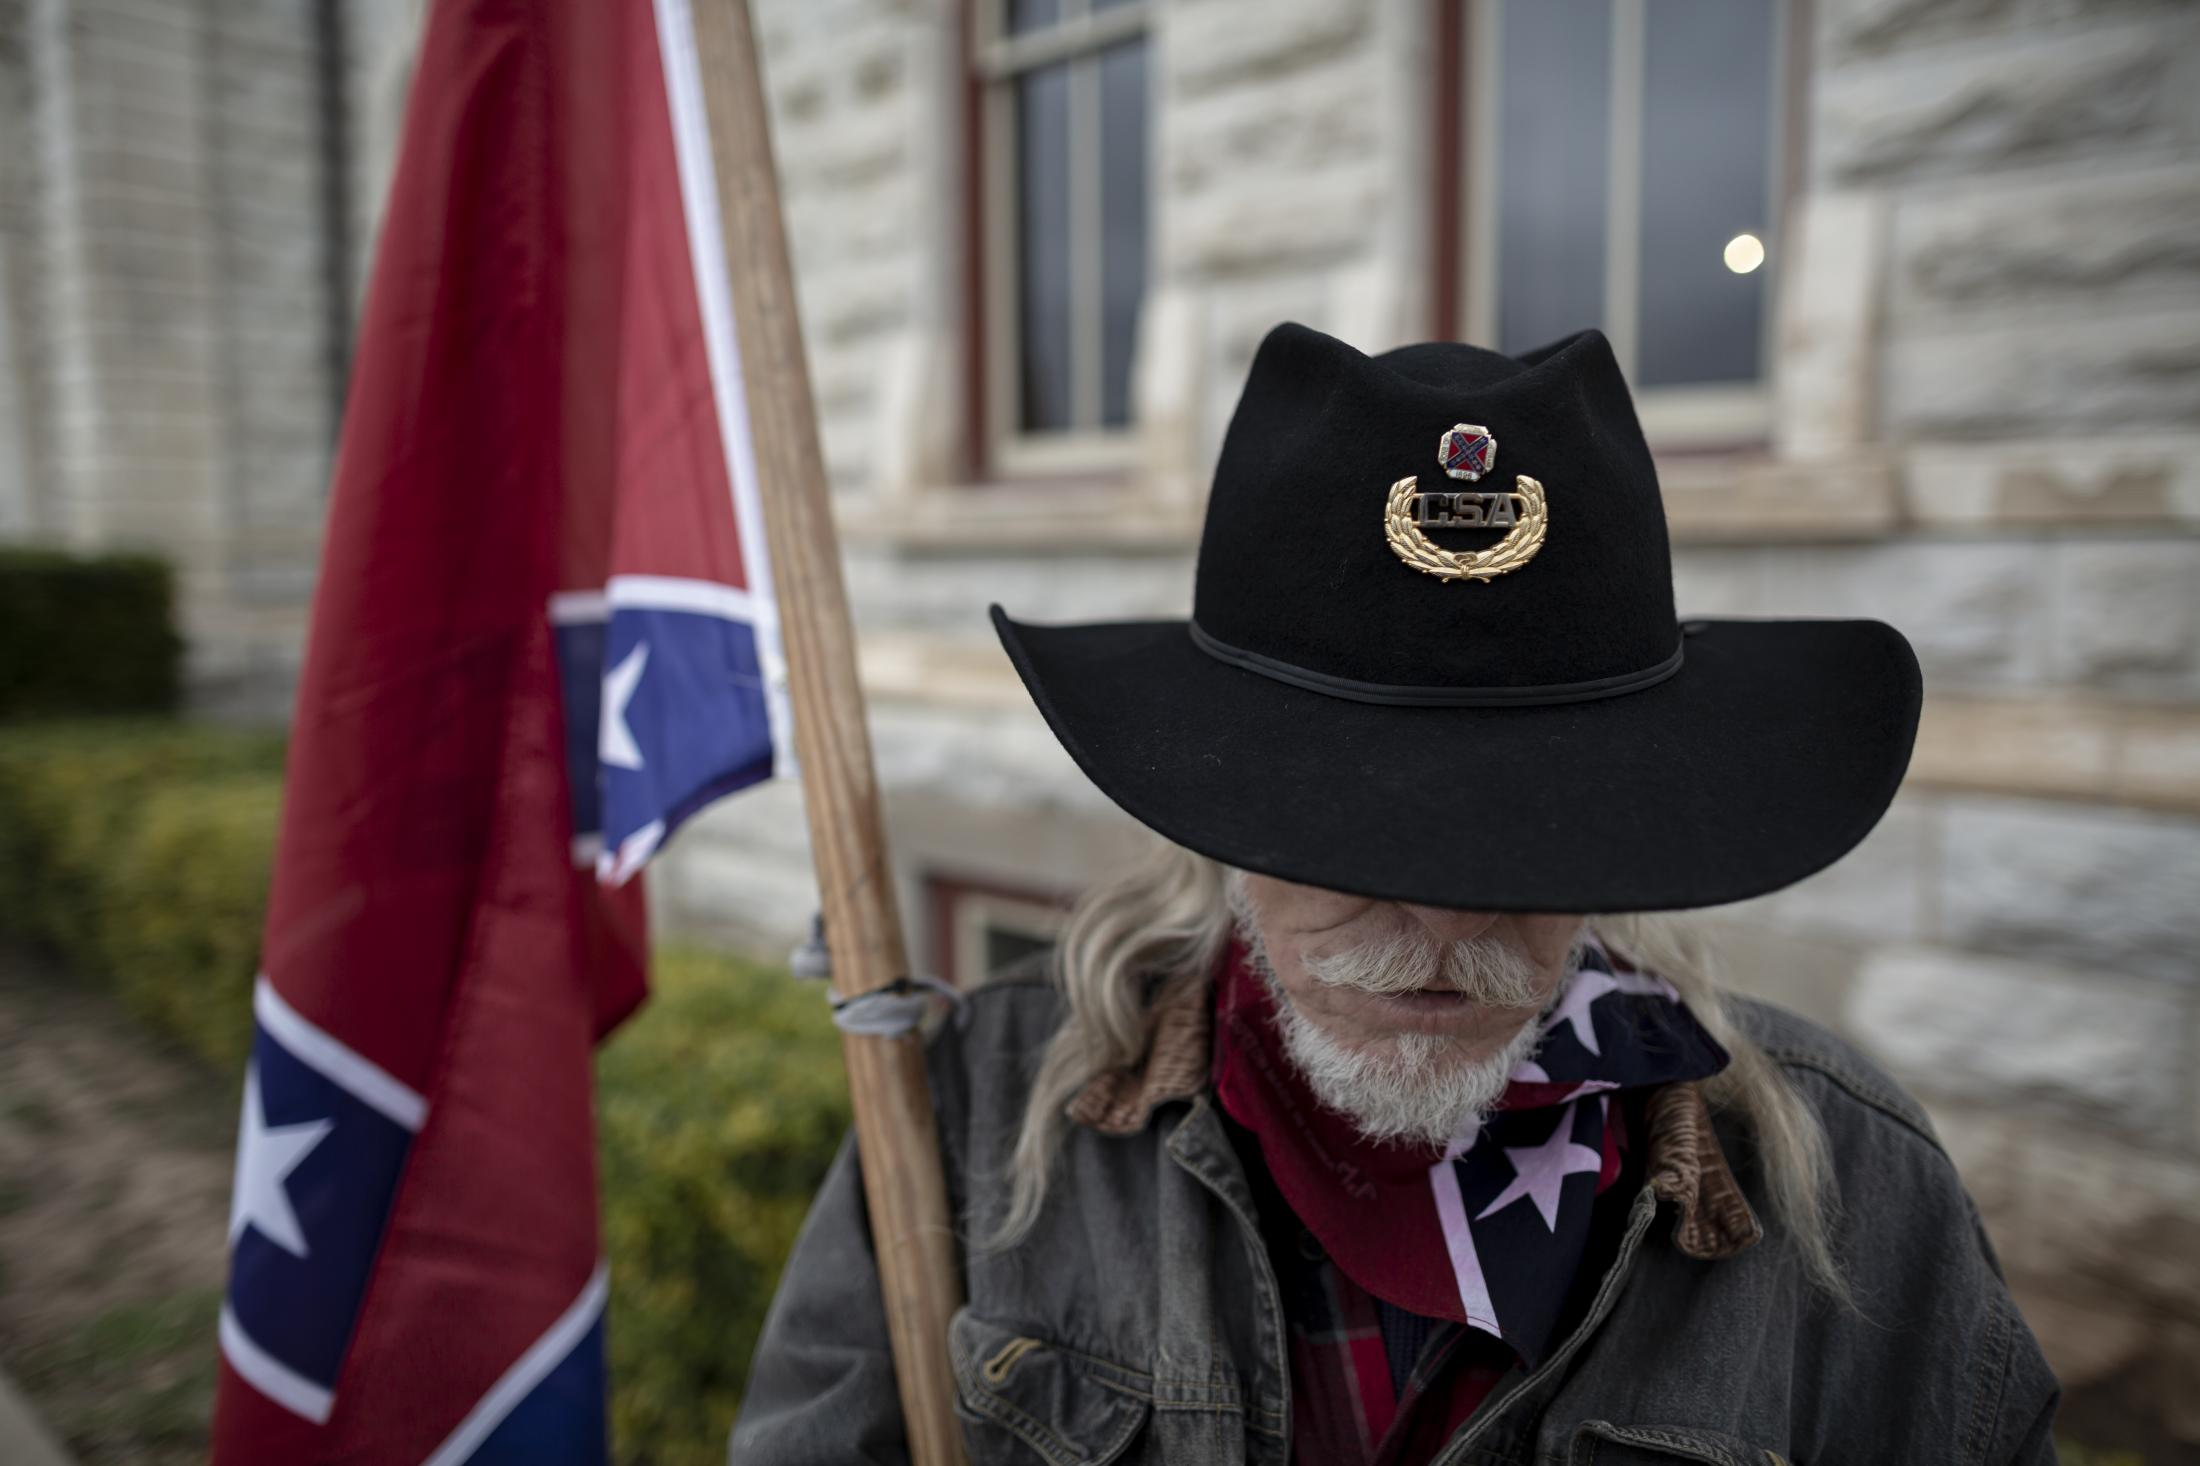 A member of the Sons of the Confederacy attends a annual Confederate Veterans Memorial Day at the Parker County Court House. The Memorial Day is held one day after Martin Luther King Jr Day. This group stands against the removal of the statue and to those who want it gone.